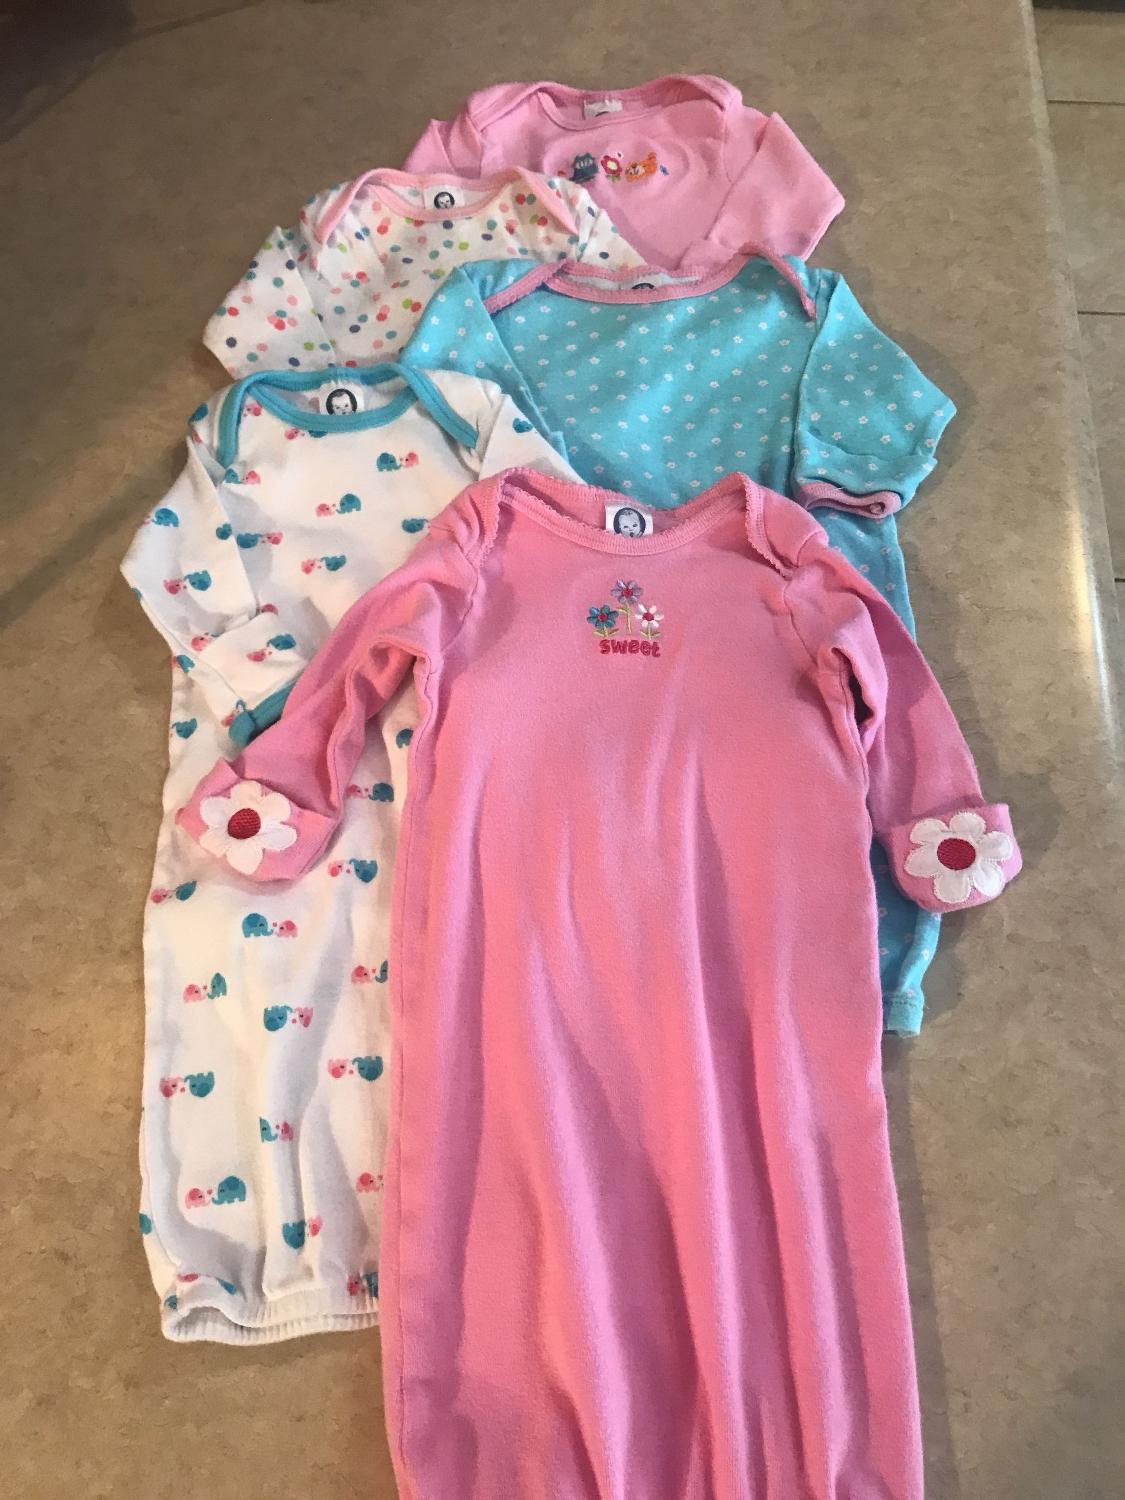 Find more Baby Girls Group Of 5 Cute Gerber Gowns $3.50 for sale at ...